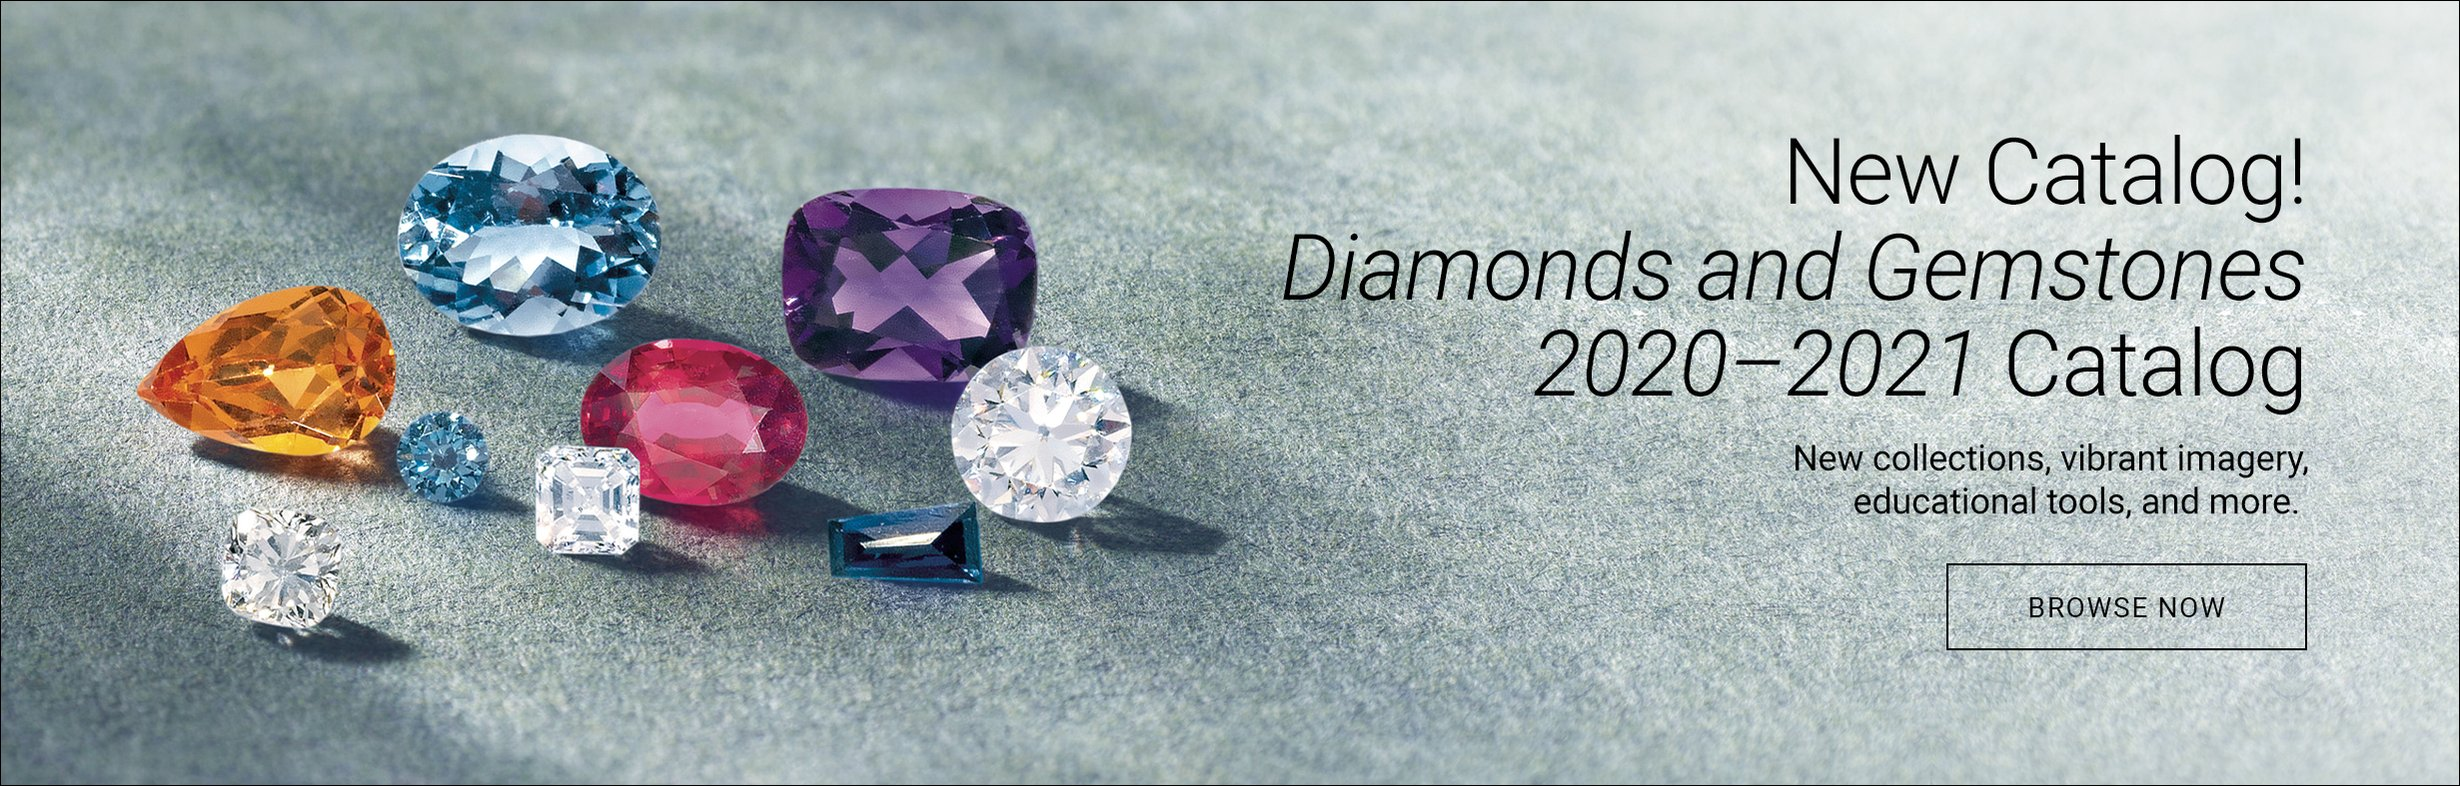 Diamonds and Gemstones Catalog